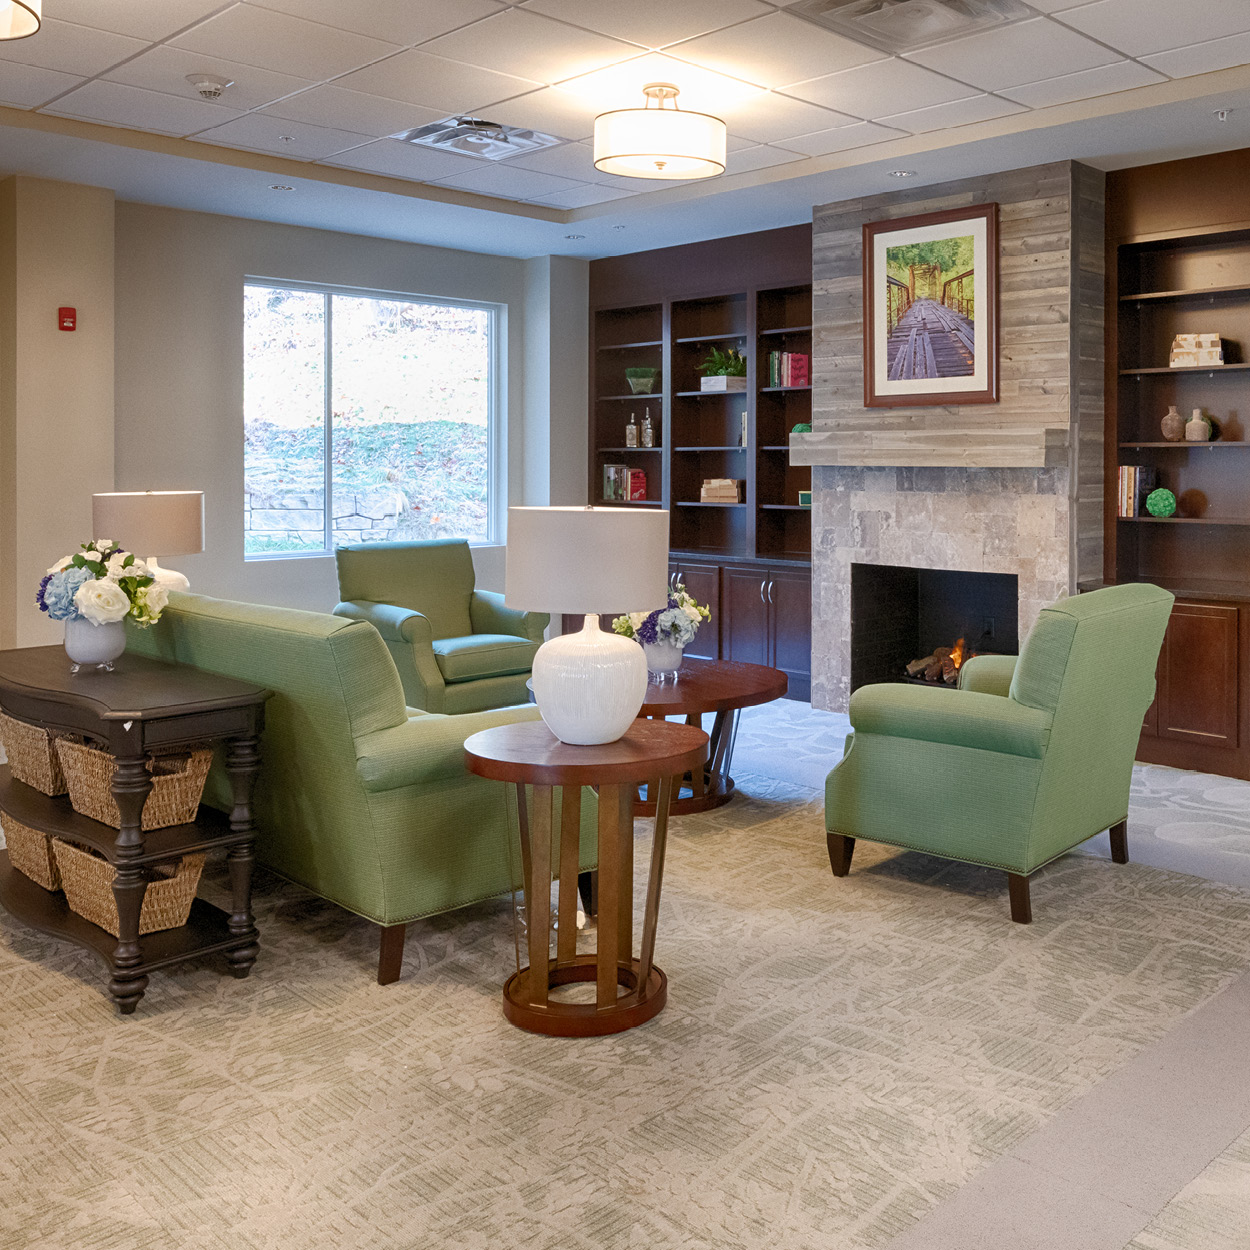 Stonerise Charleston skilled nursing home and transitional care facility family room